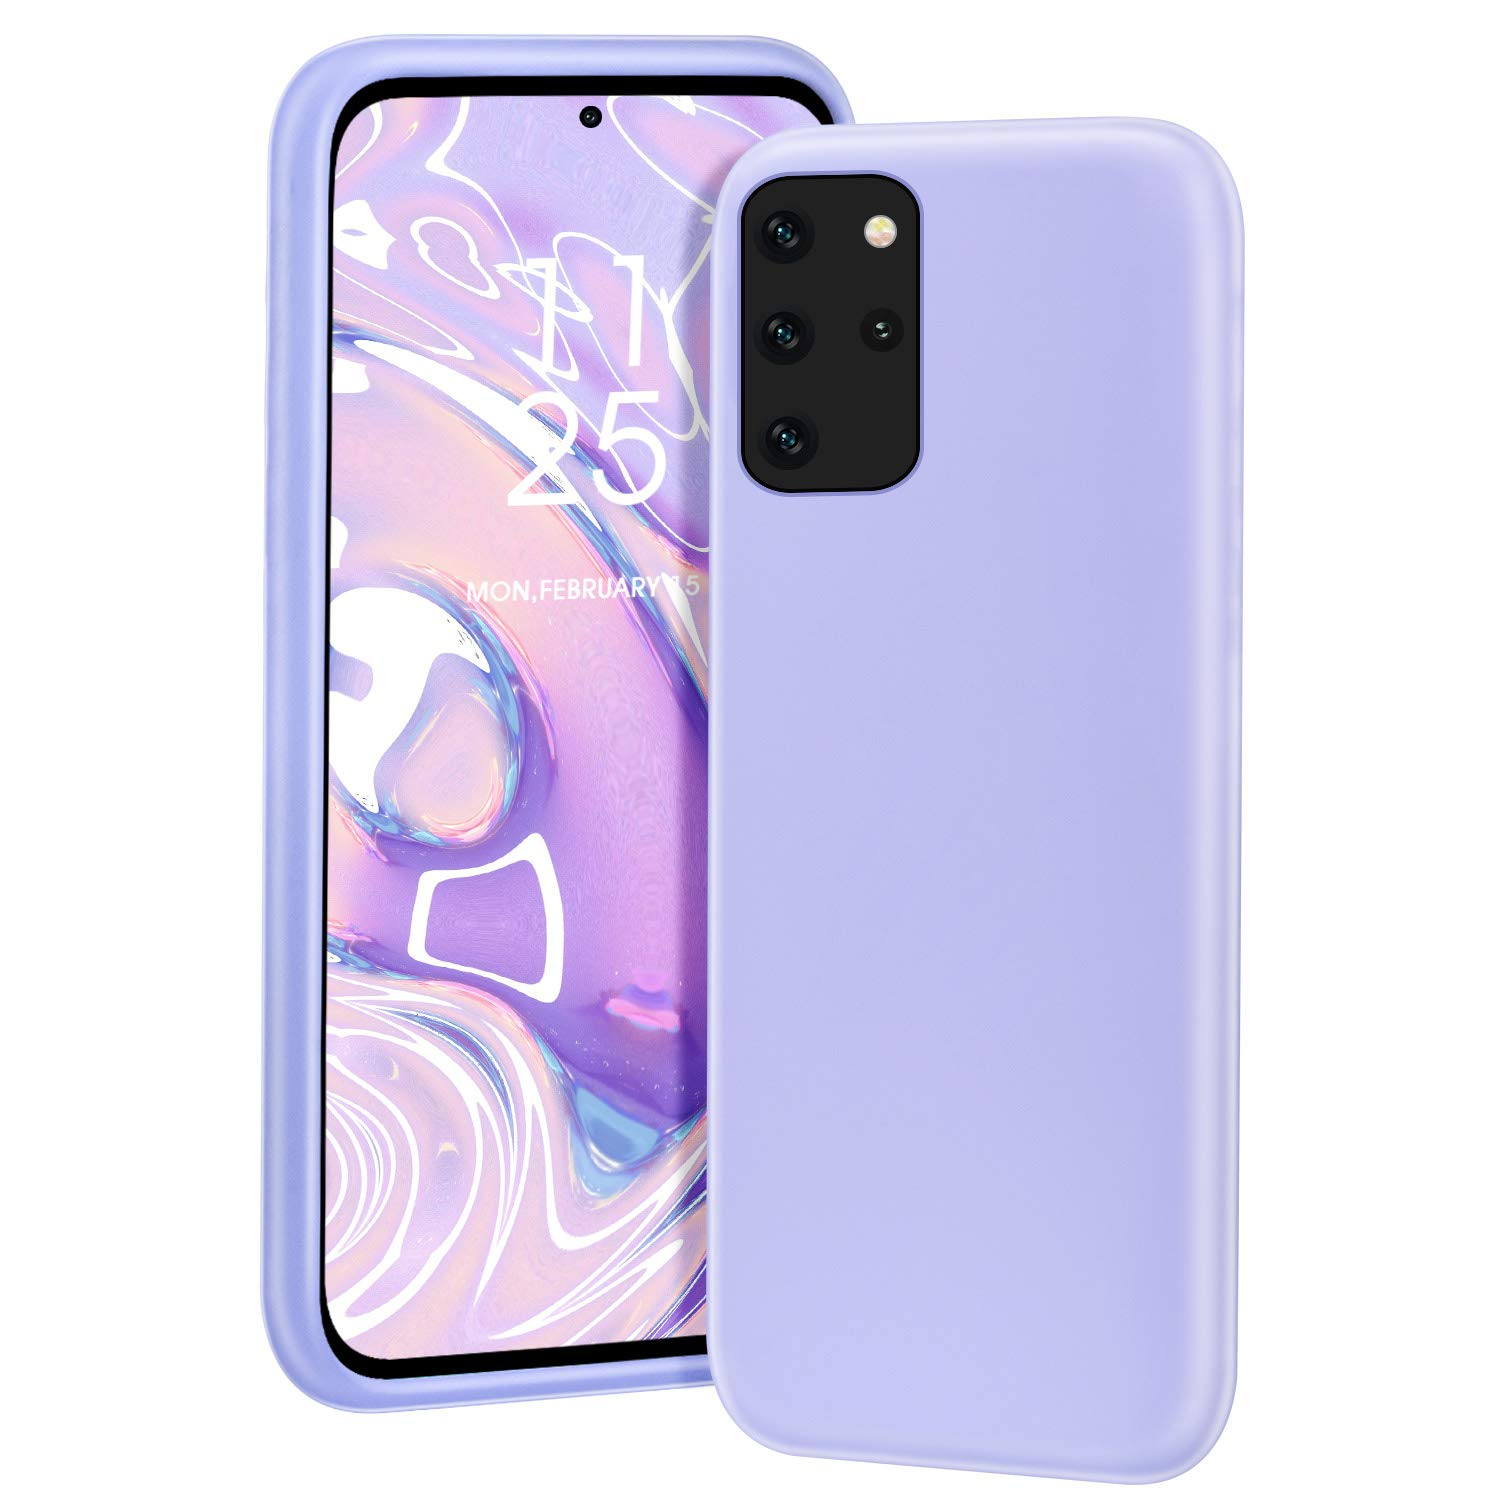 MILPROX Galaxy S20 Plus Case, Liquid Silicone Gel Rubber Shockproof Slim Shell with Soft Microfiber Cloth Lining Cushion Cover for Galaxy S20 Plus Phone 6.7 inches (2020)- Light Purple